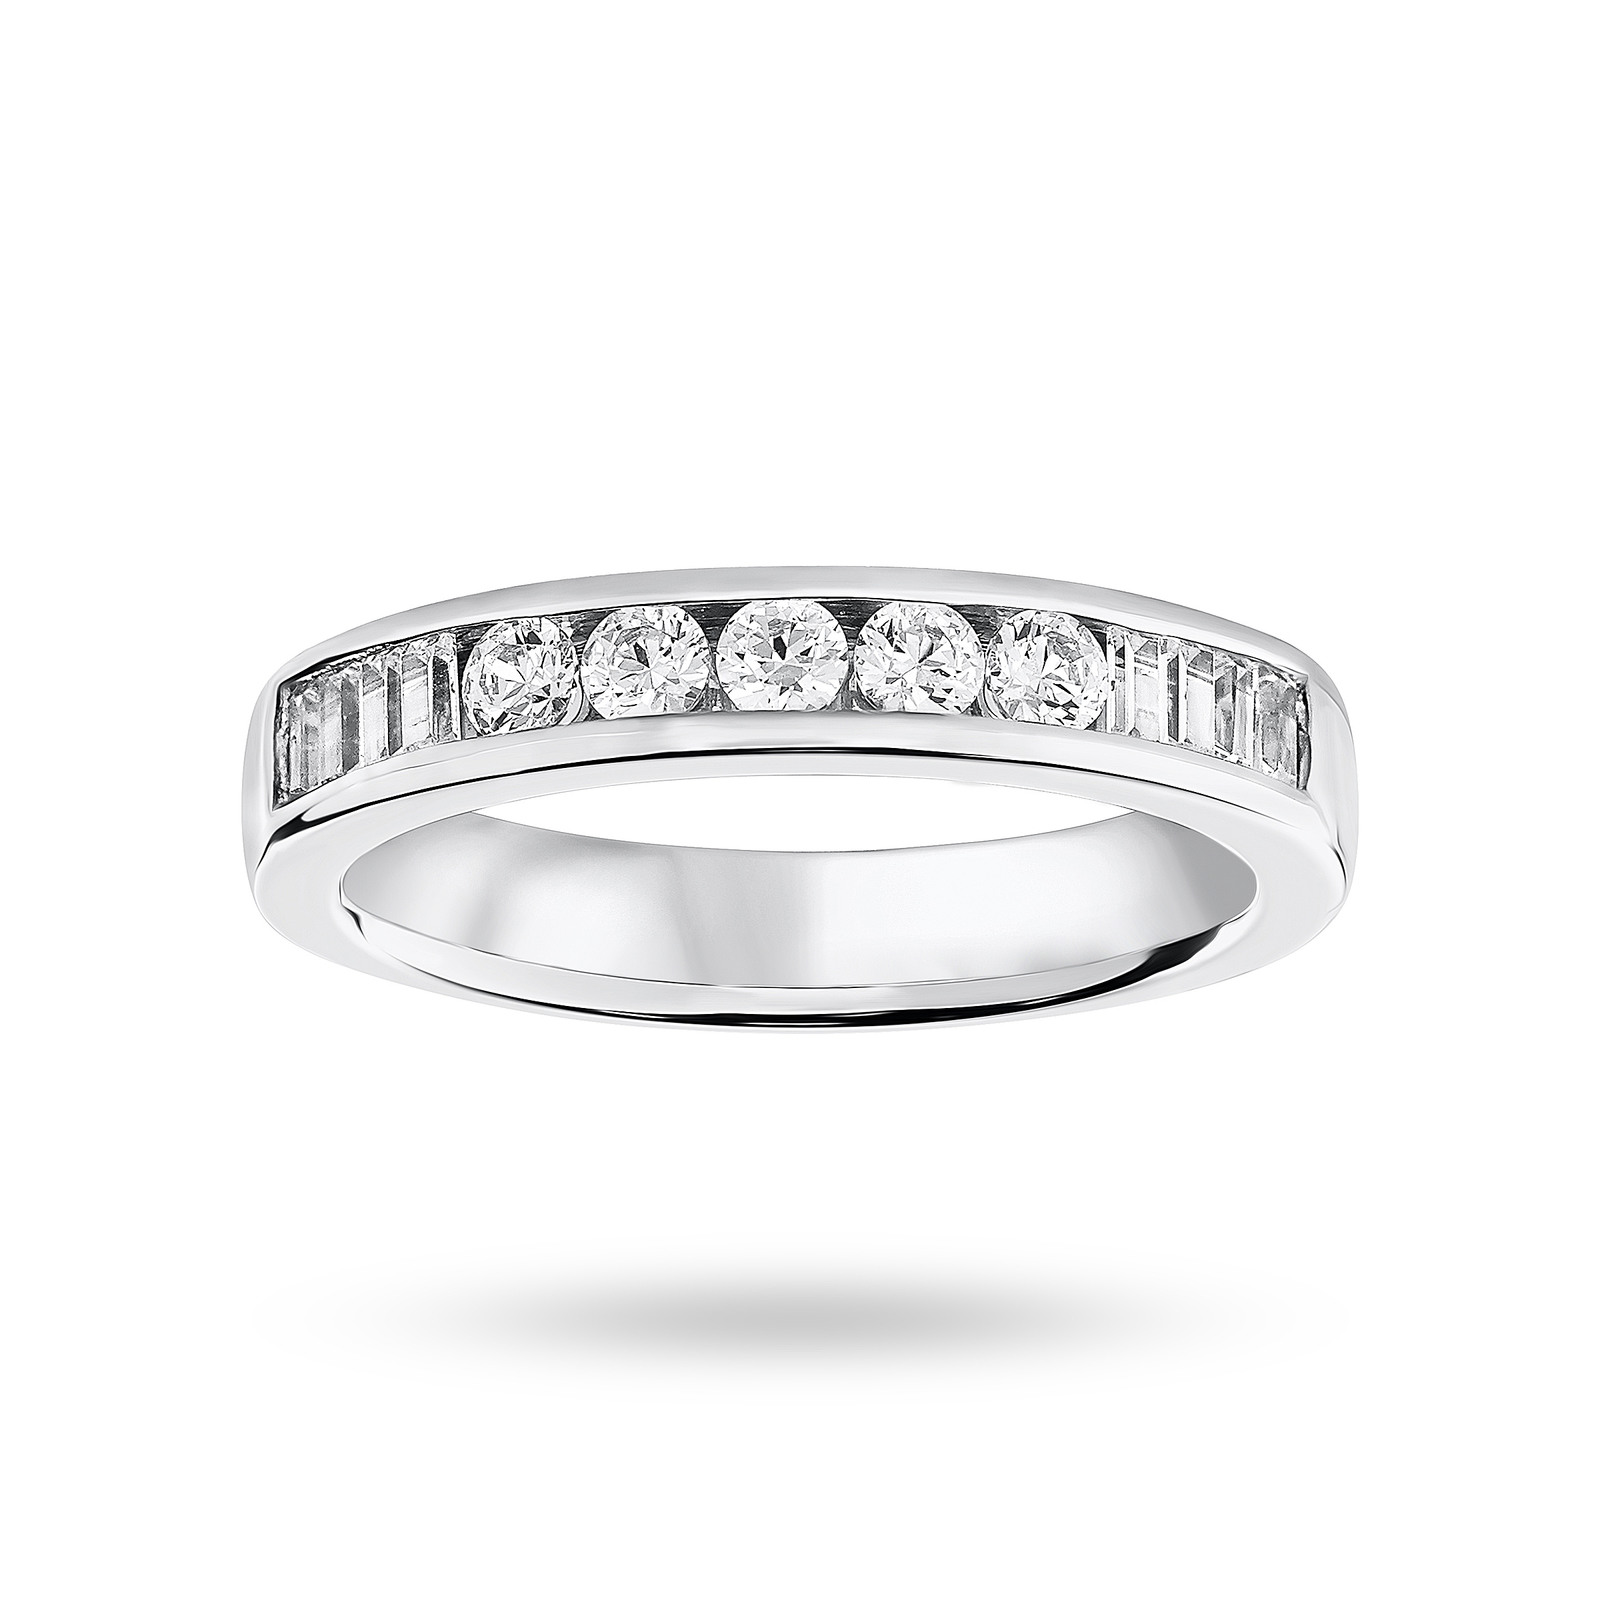 Platinum 0.50 Carat Brilliant Cut and Baguette Channel Set Half Eternity Ring